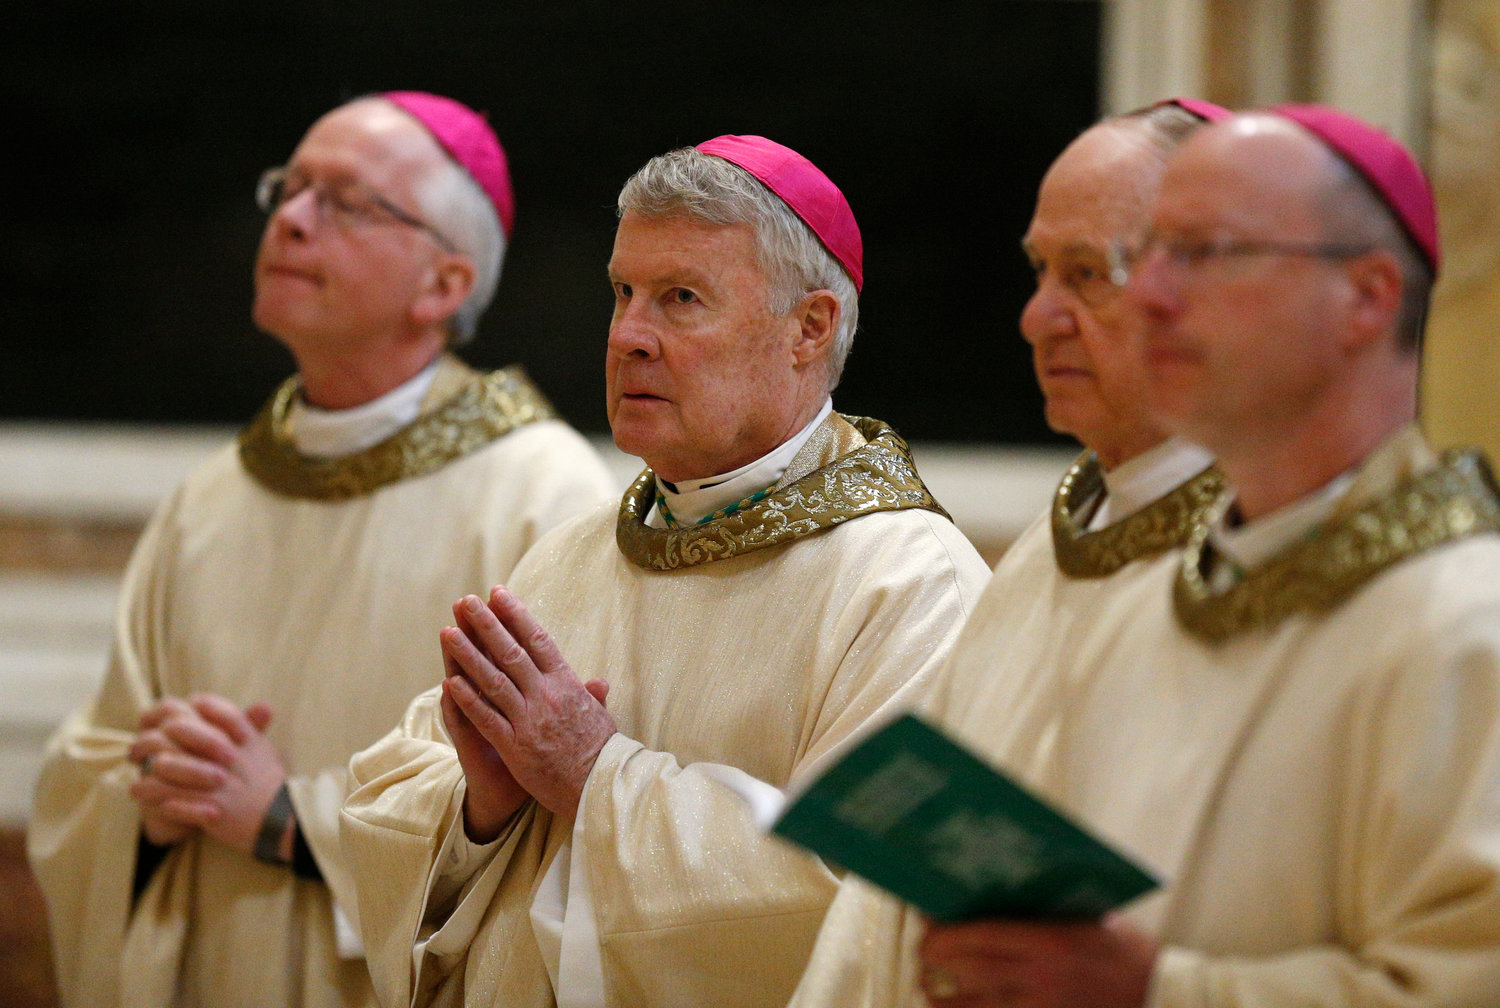 "Bishop W. Shawn McKnight of Jefferson City and other U.S. bishops from Iowa, Kansas, Missouri and Nebraska concelebrate Mass at the Basilica of St. Mary Major in Rome Jan. 14, 2020. The bishops were making their ""ad limina"" visits to the Vatican to report on the status of their dioceses to the pope and Vatican officials."